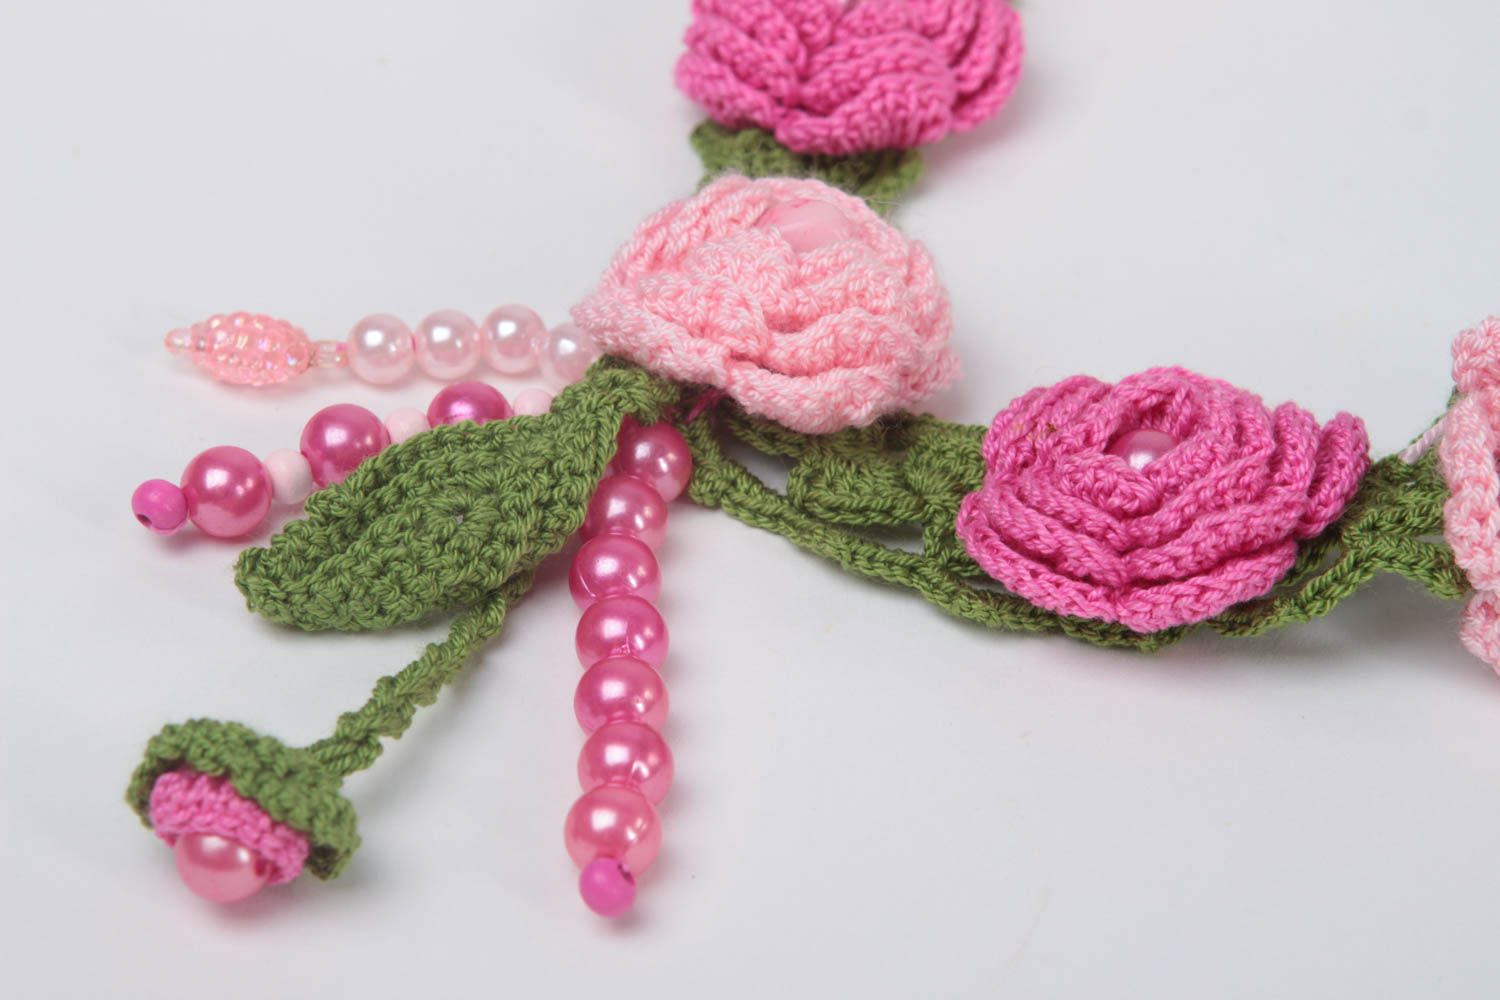 Handmade textile necklace crocheted flower necklace stylish accessory gift photo 3